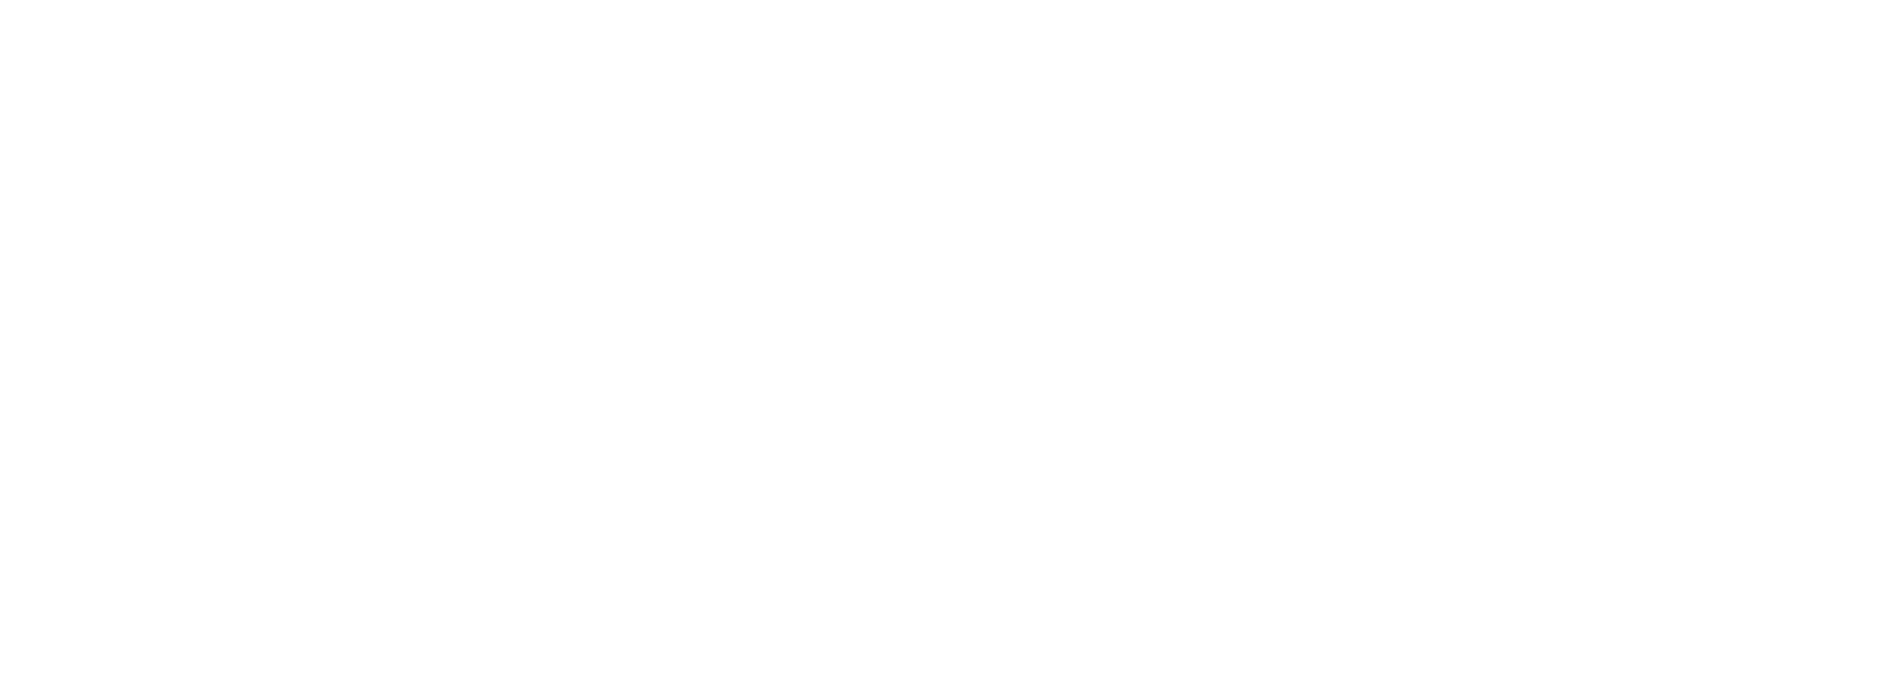 In-pulsoMusical